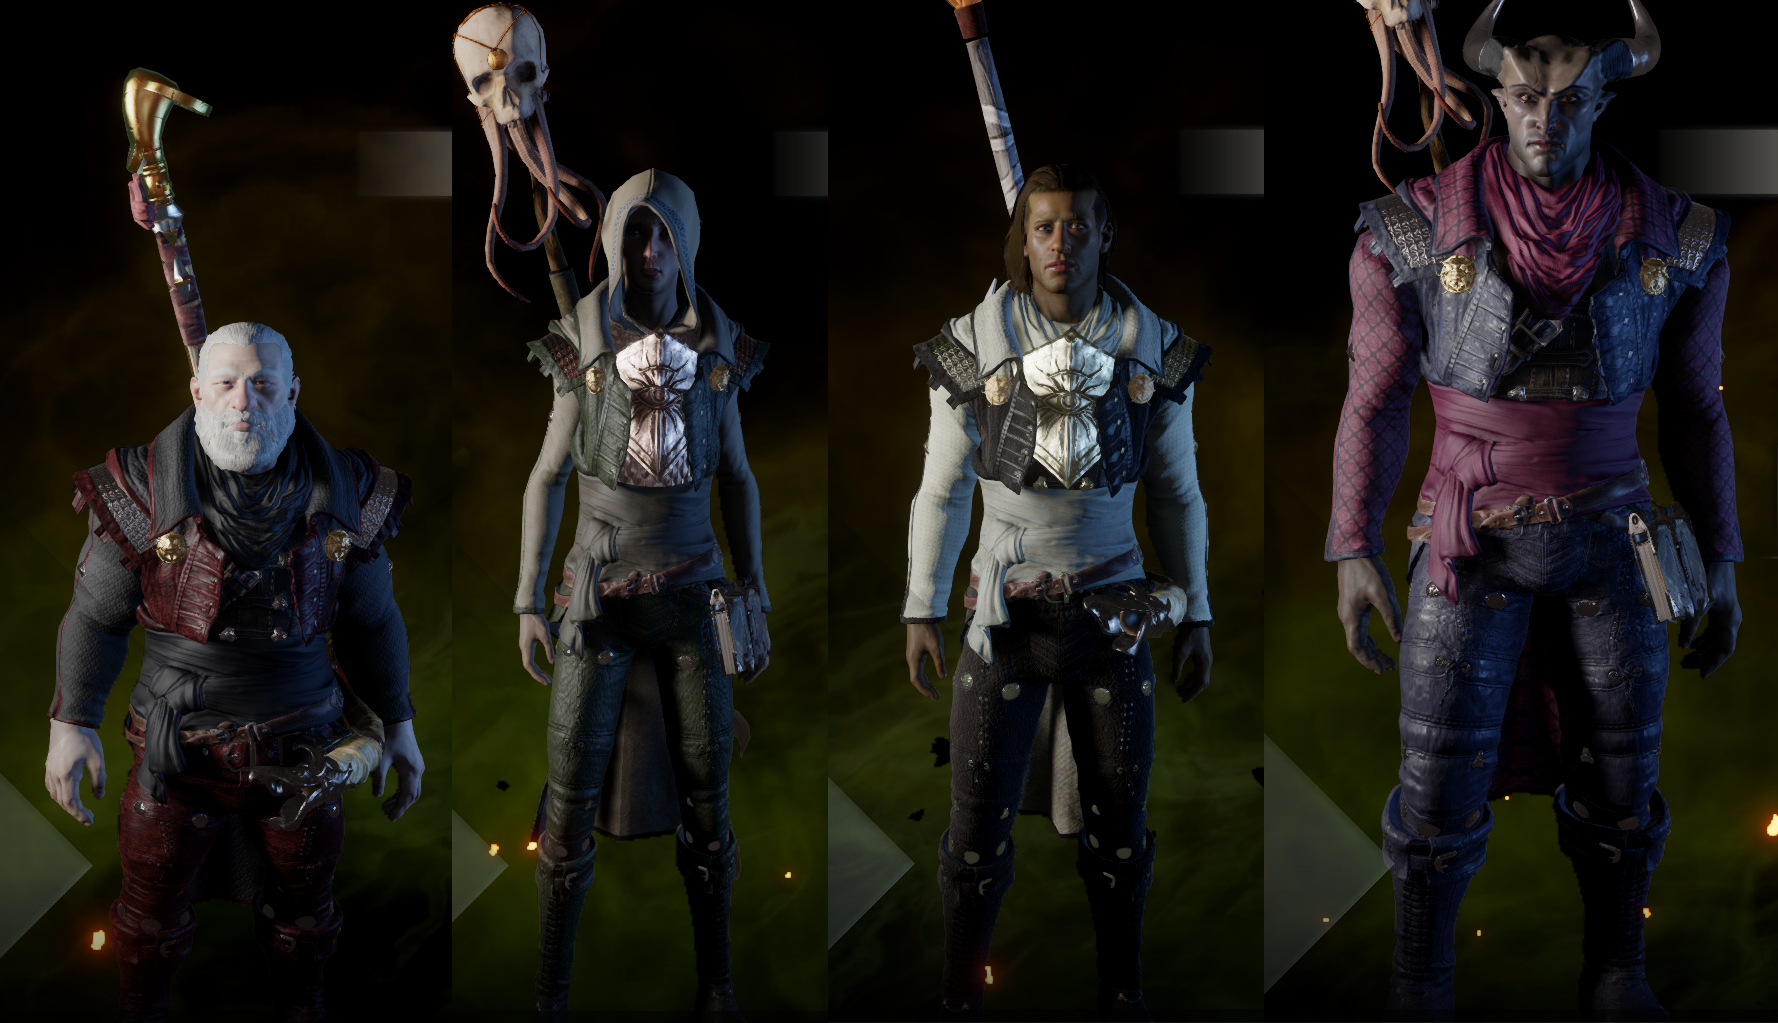 Pj and light armor tinting tweaks at dragon age inquisition nexus